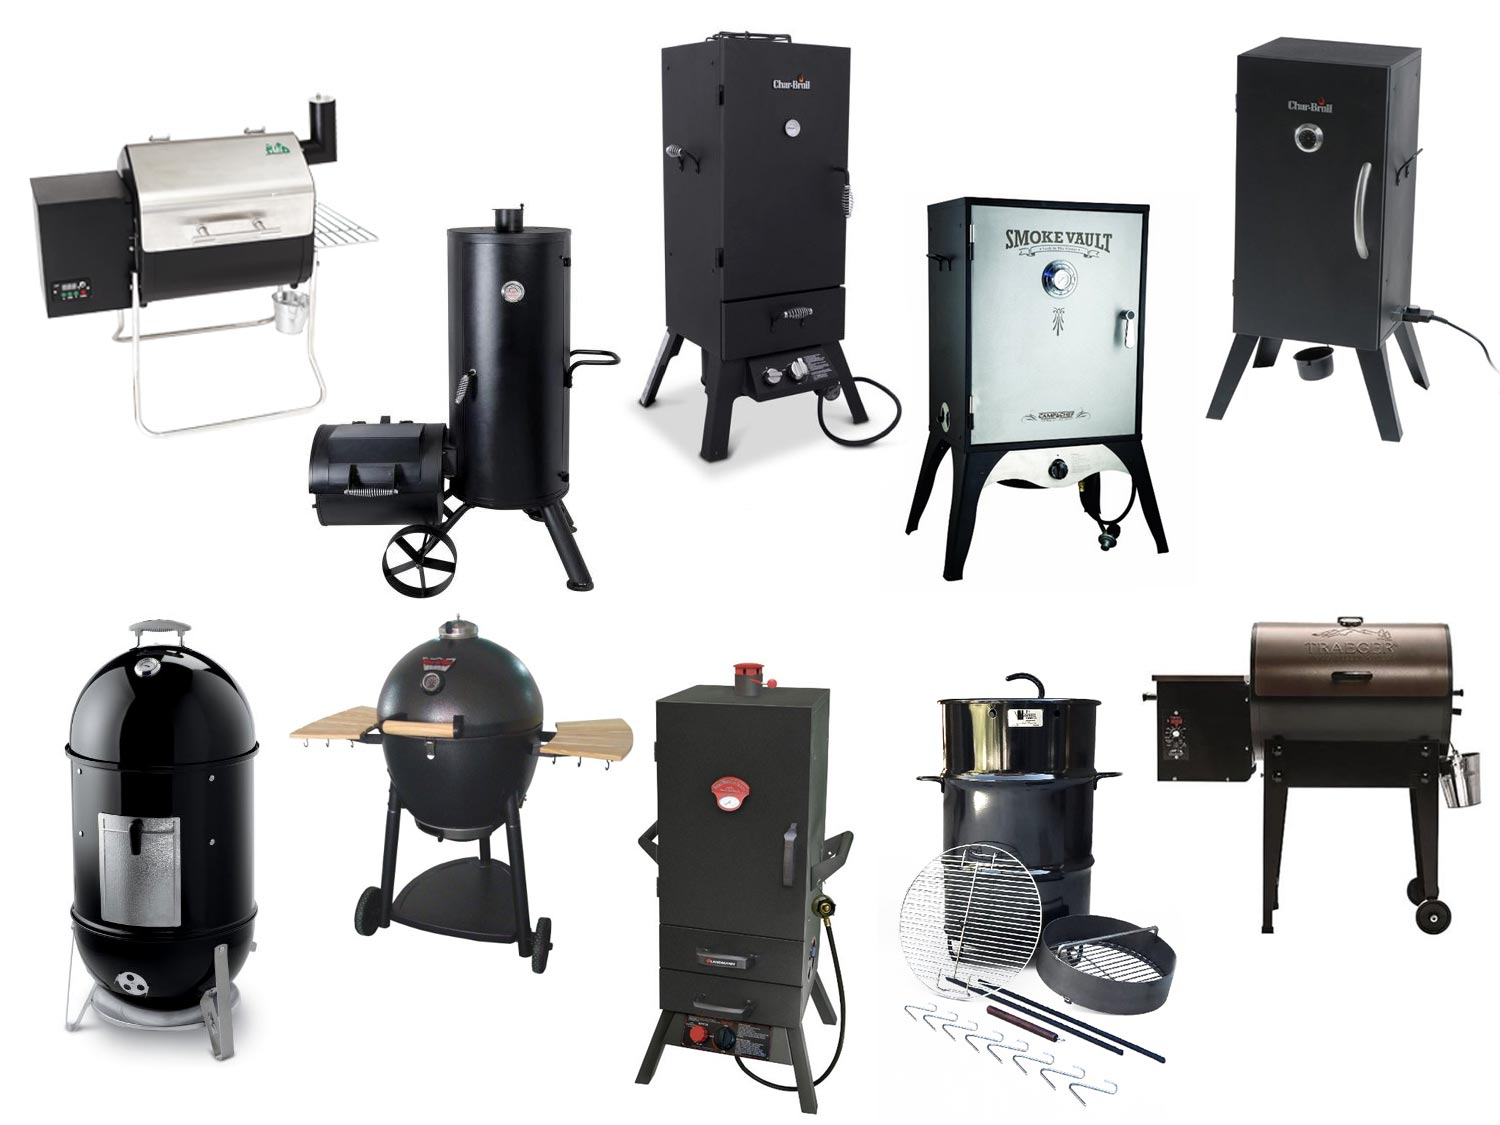 The Best Smokers Under $500 2015 Edition Fabweb #836C48